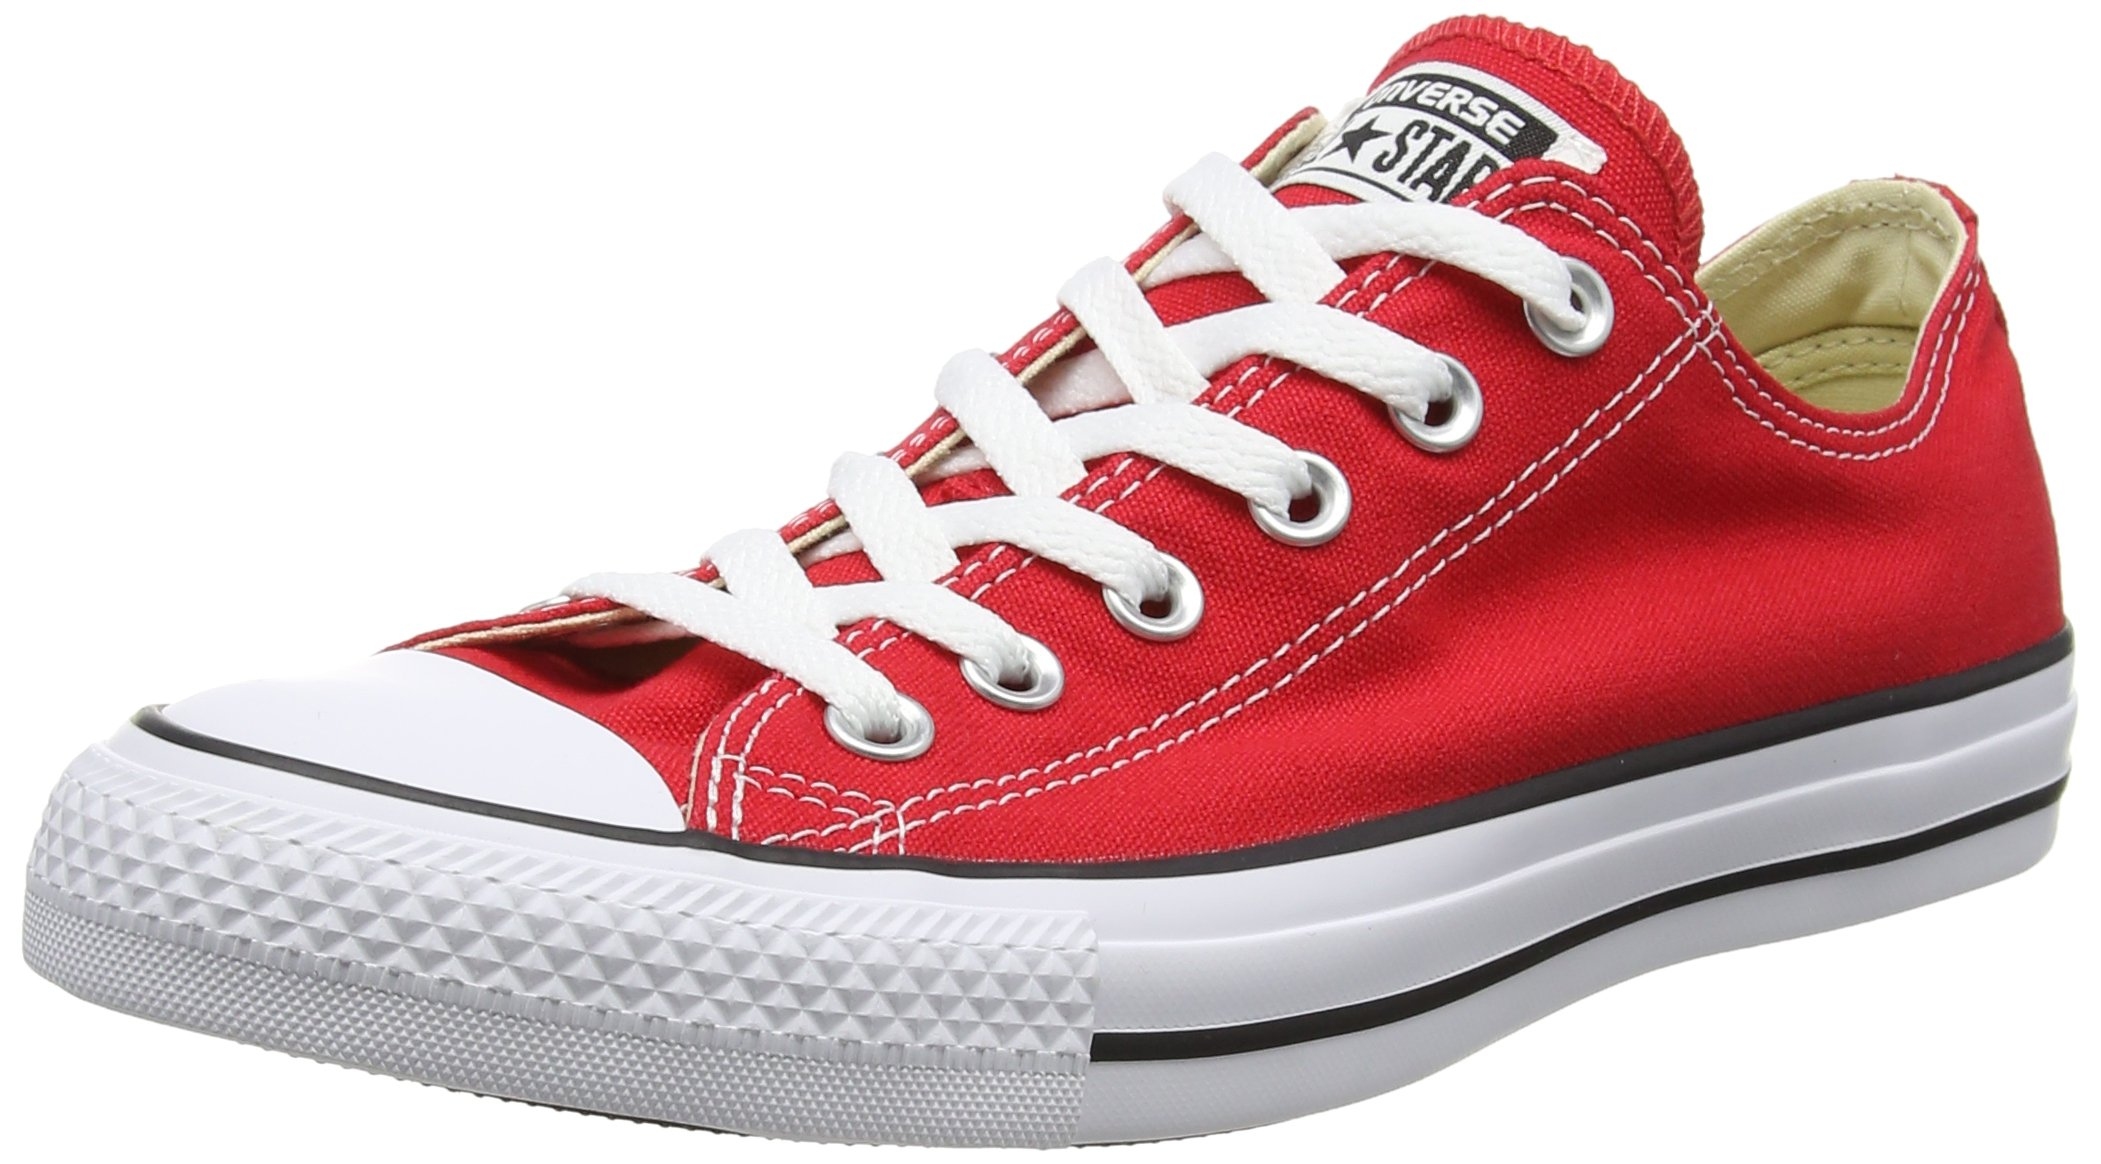 Converse Unisex Chuck Taylor All Star Low Top Red Sneakers - 7.5 D(M)